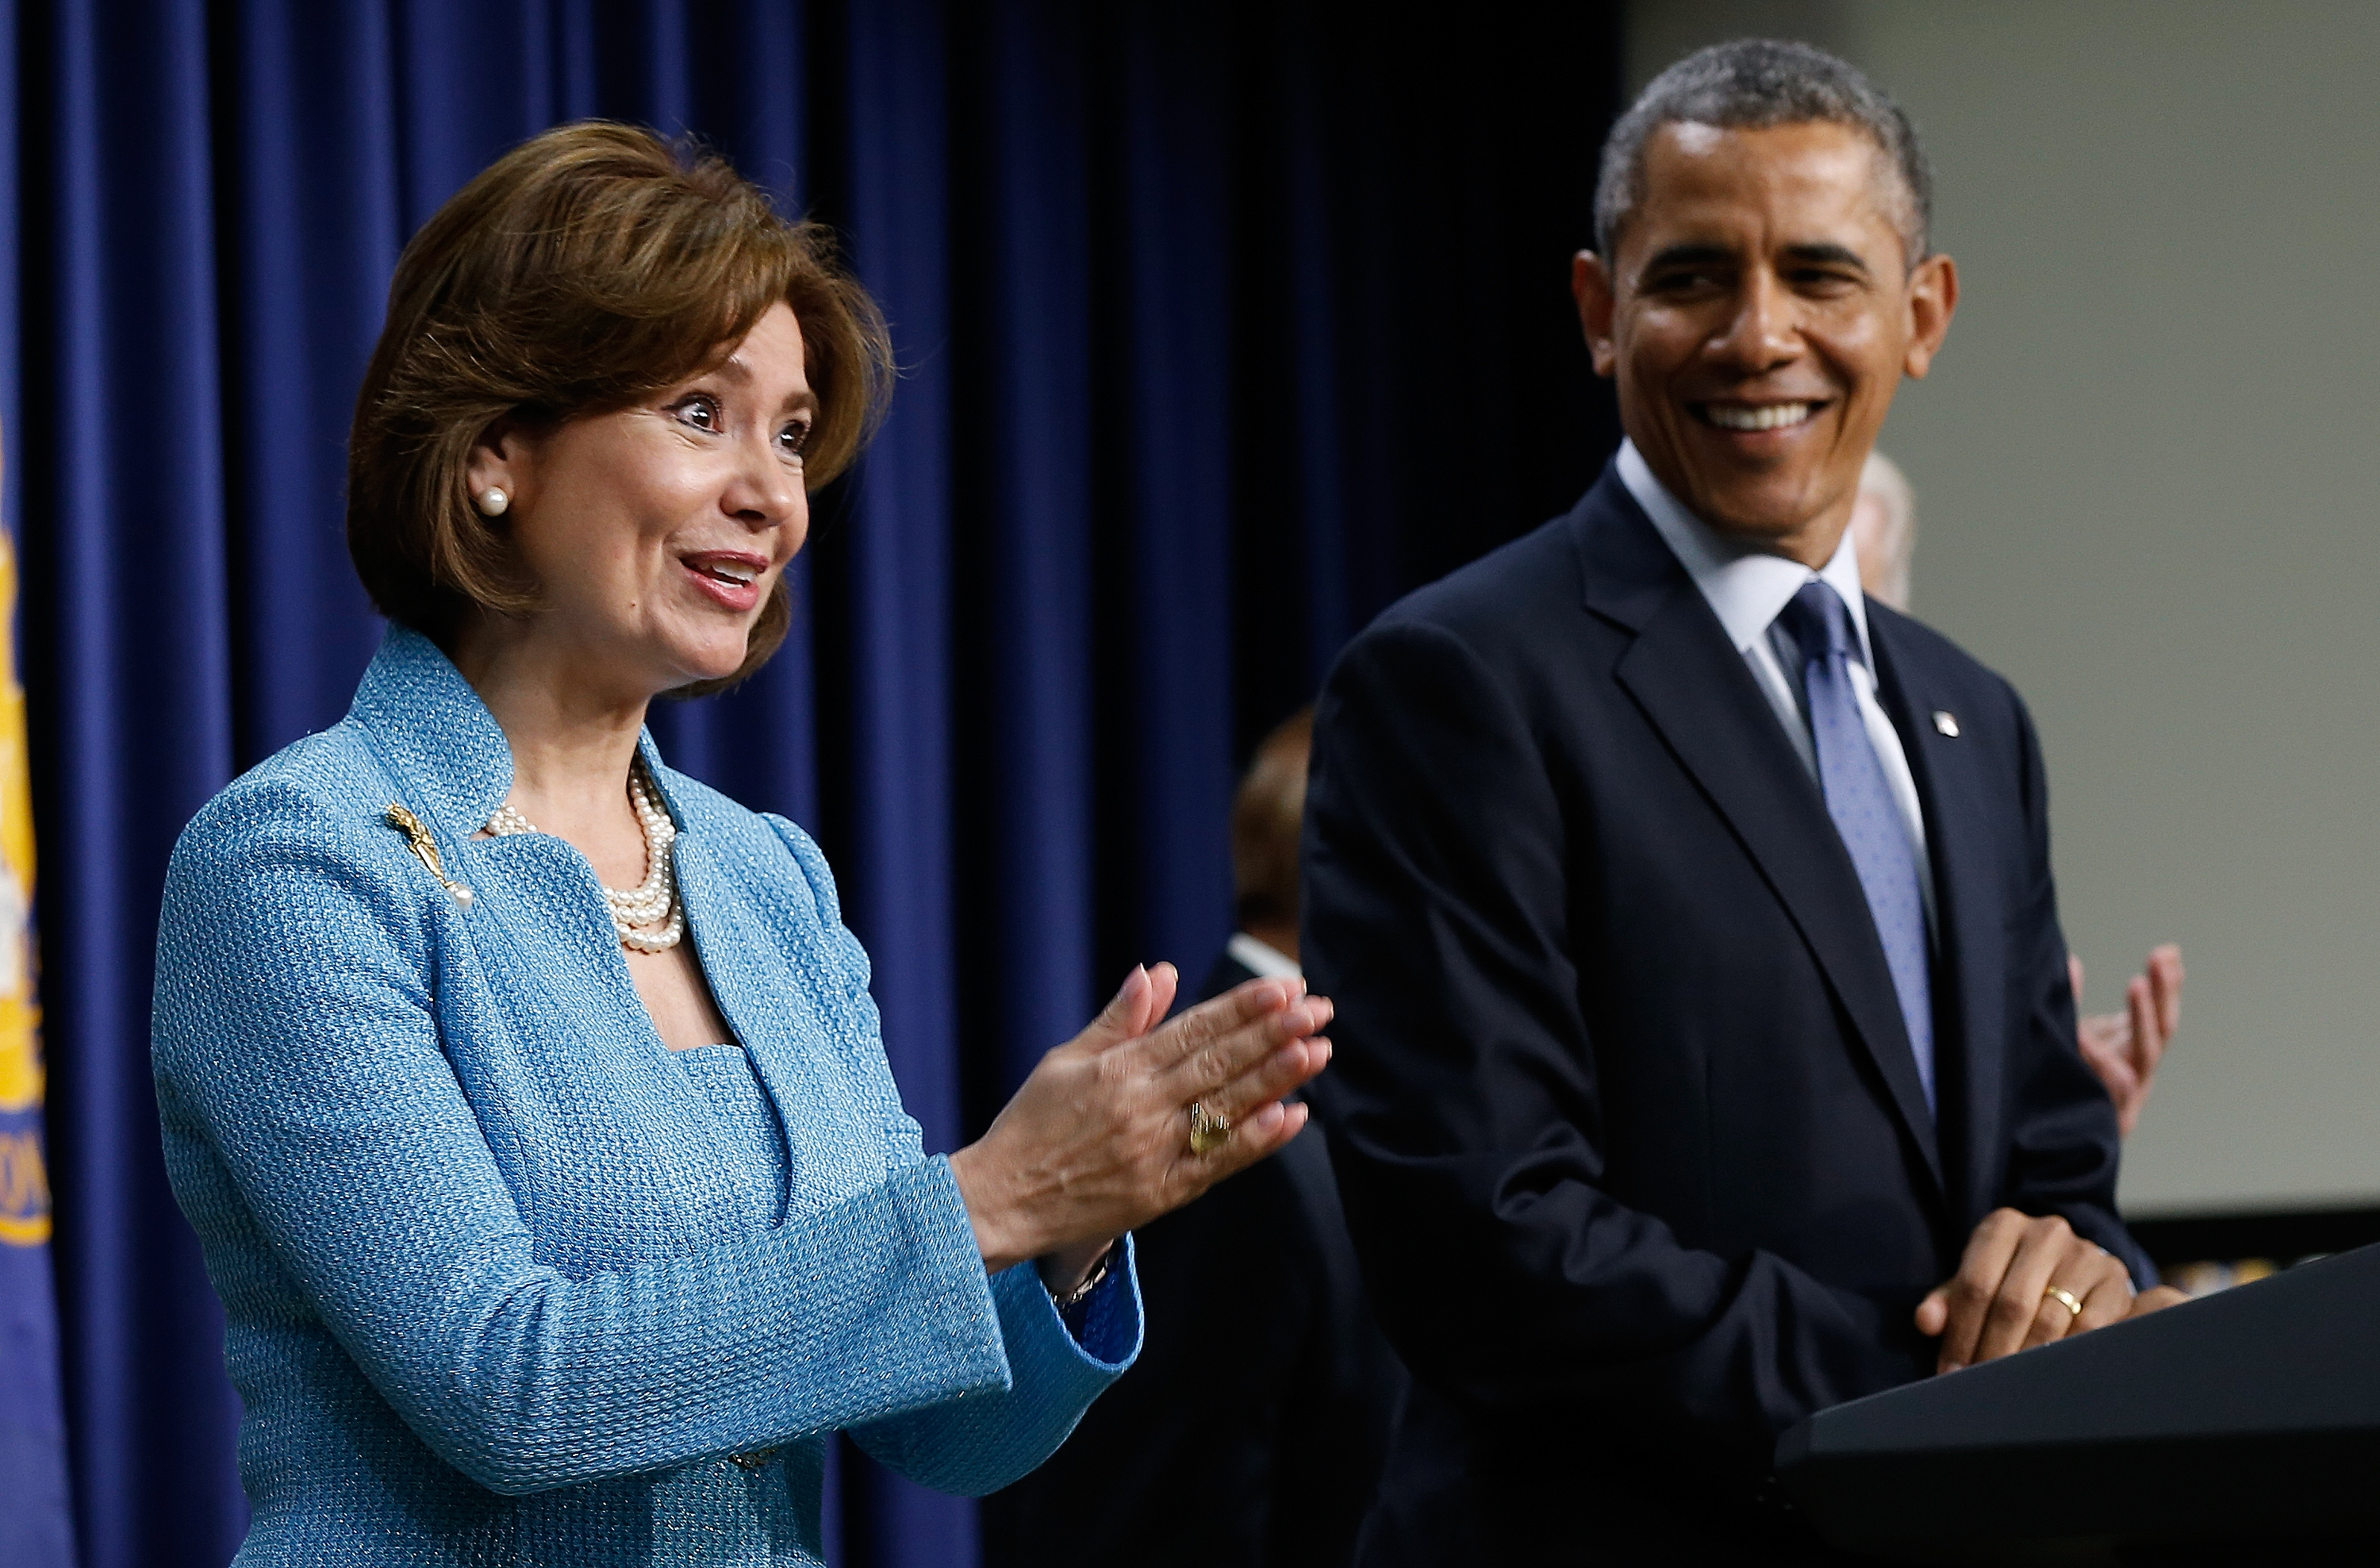 Maria Contreras-Sweet stands next to President Barack Obama at her swearing-in as Small Business Administration Chief